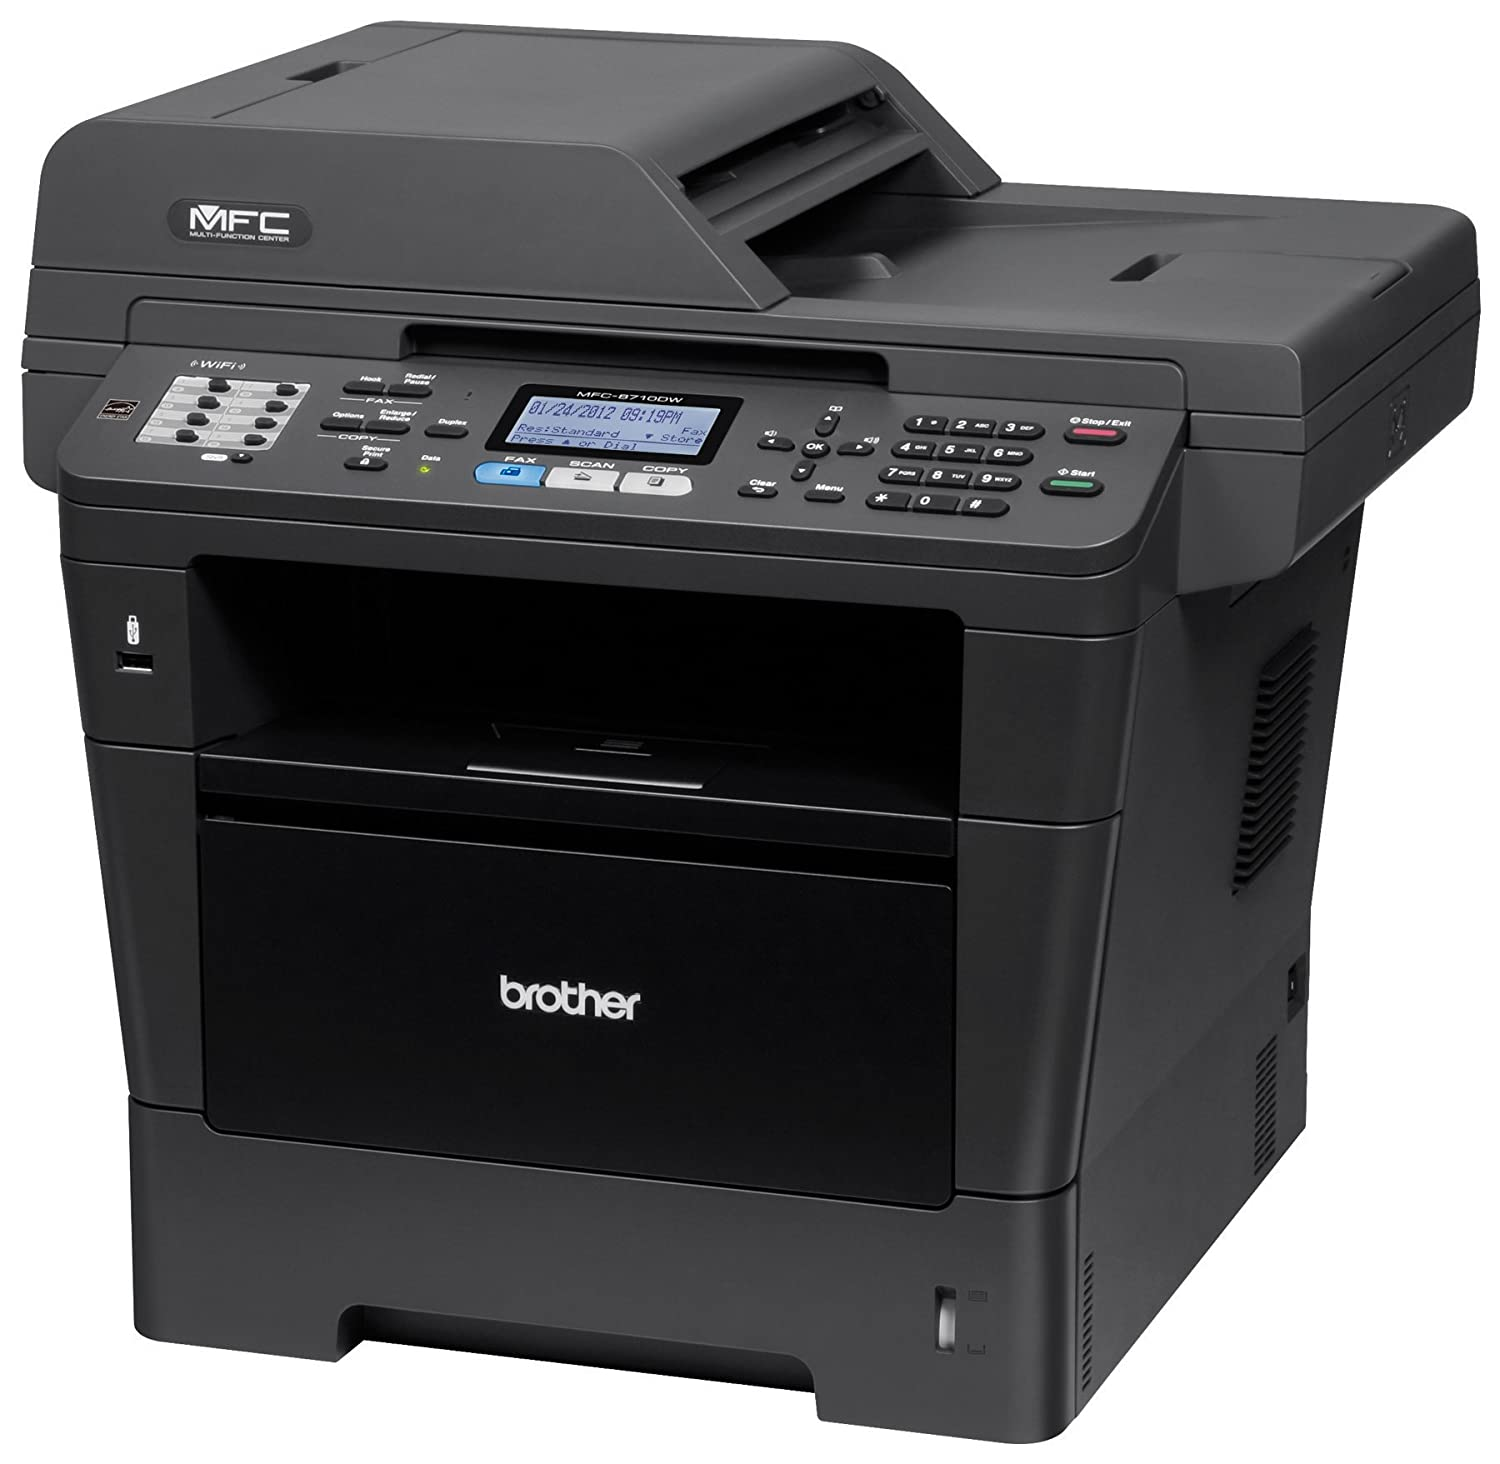 BROTHER MFC-8710DW PRINTER DOWNLOAD DRIVERS